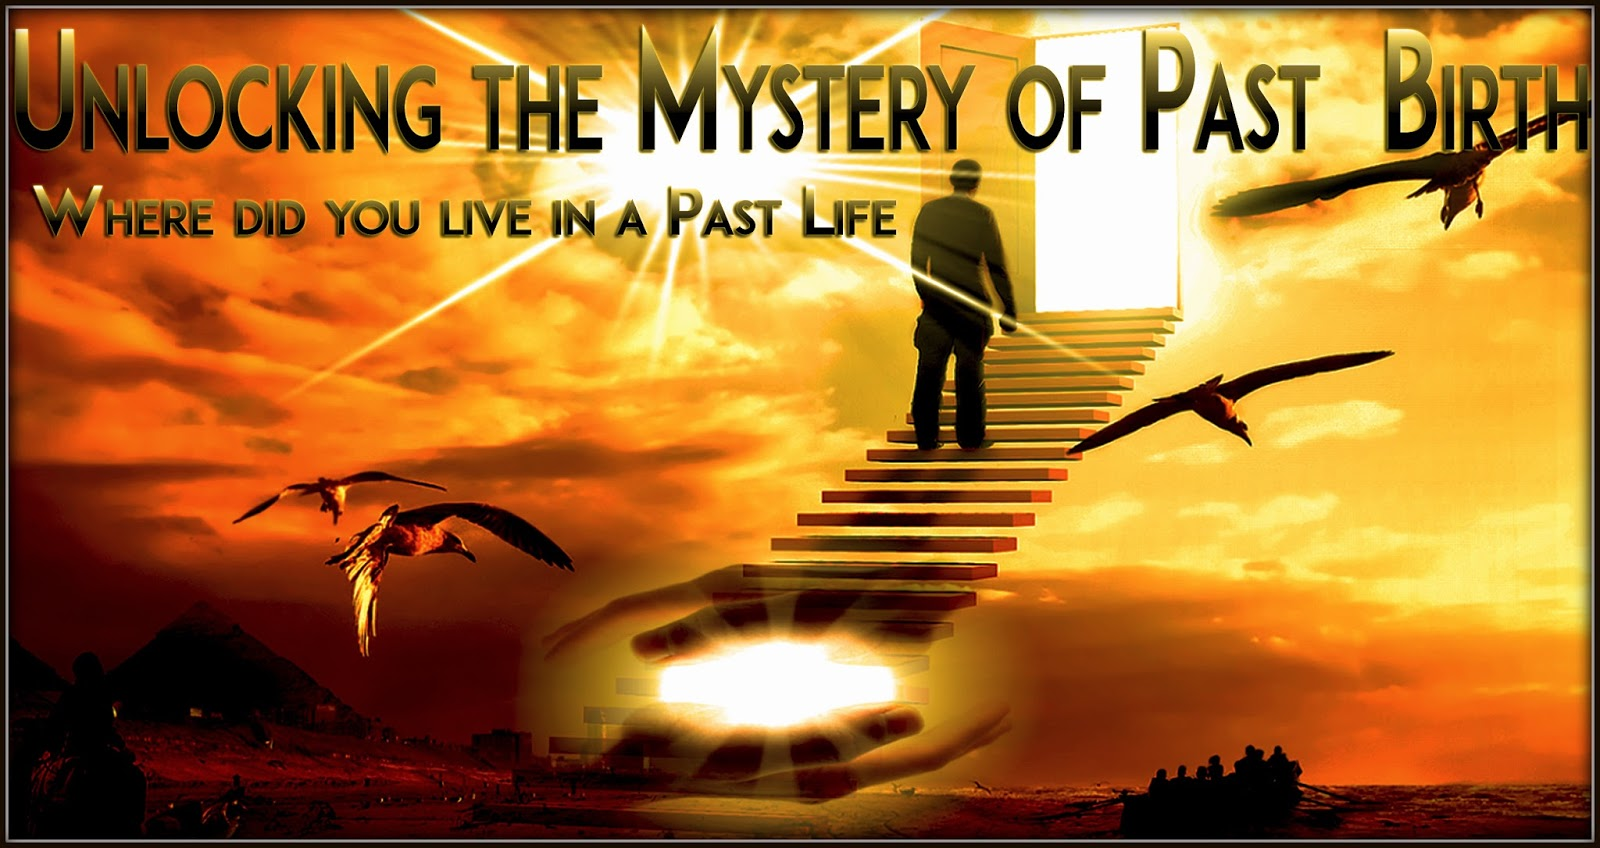 Unlocking the mystery of past birth part 1 understanding past revised edition april 2017 nvjuhfo Choice Image